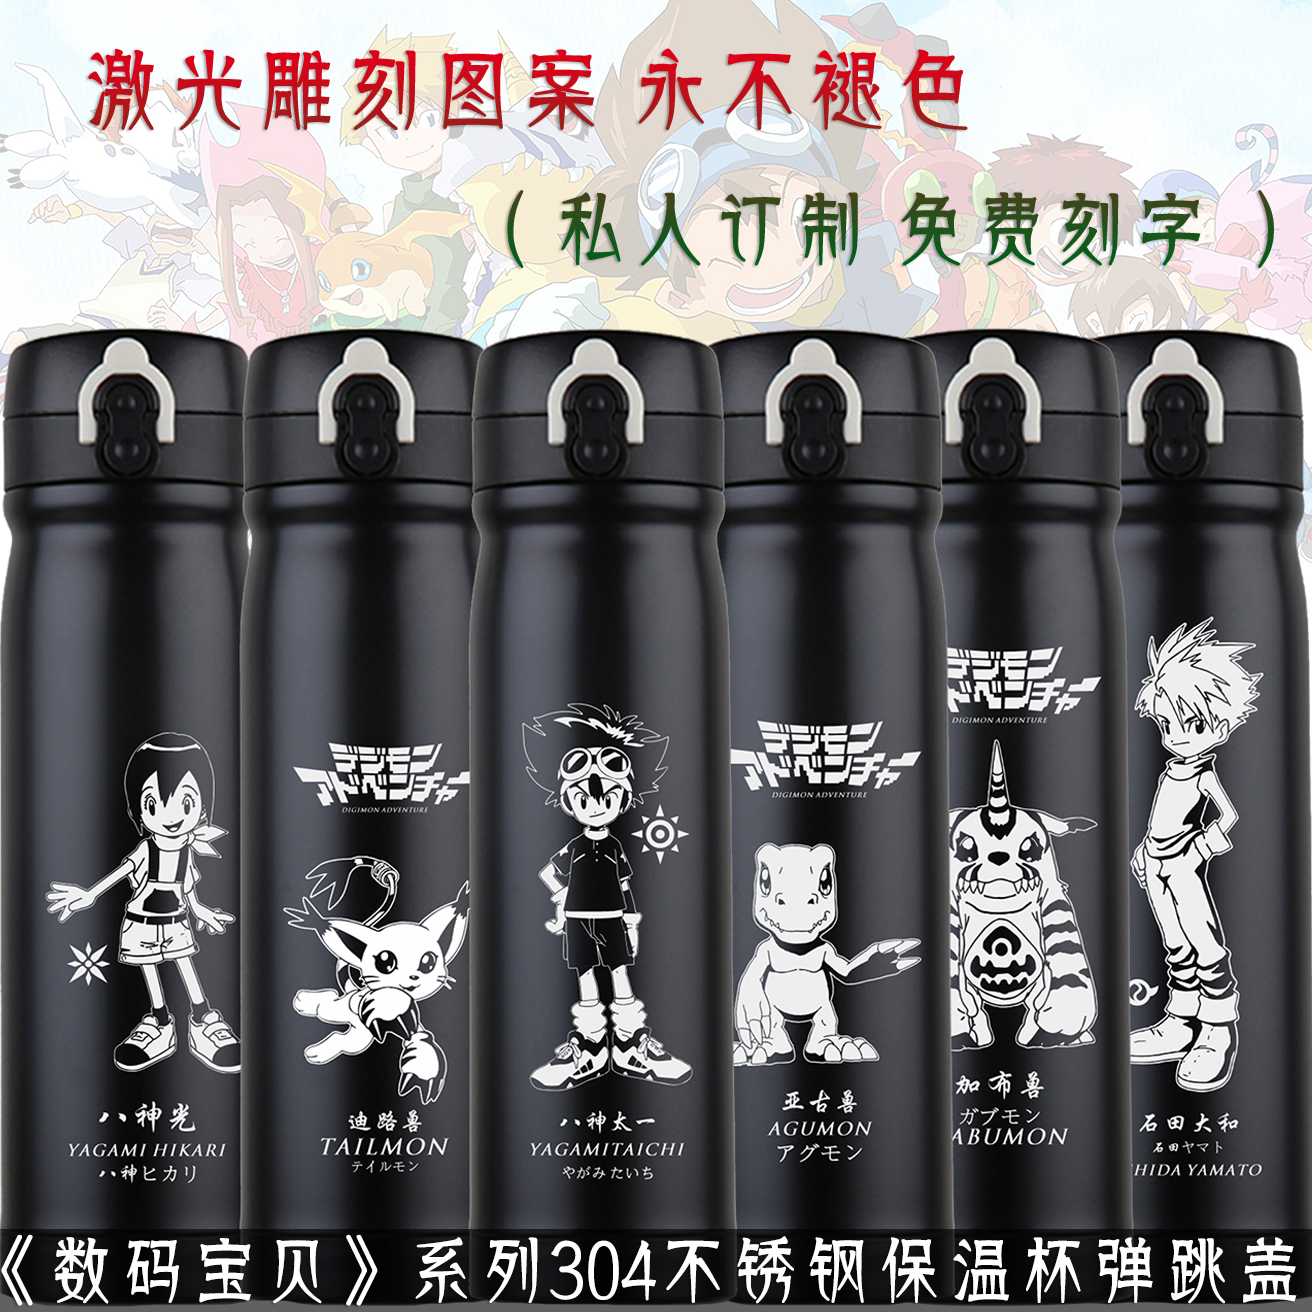 Digital beast adventure baby taiyia and photon Lang animation peripheral thermos cup student sports cup Zichao